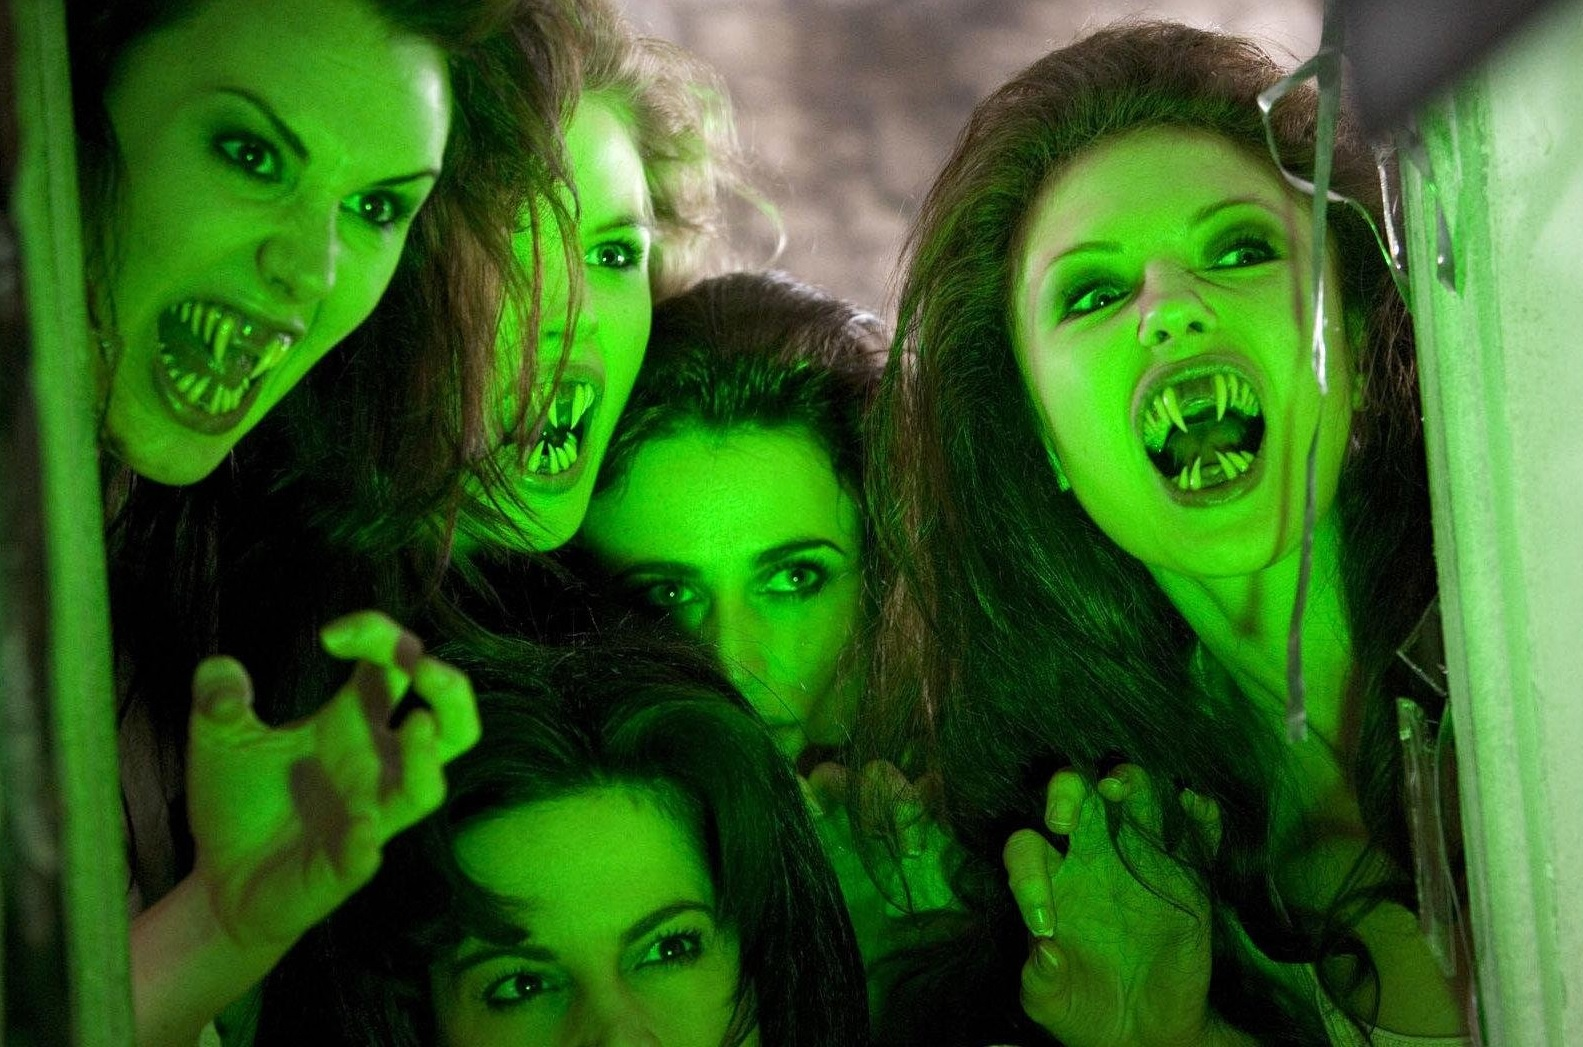 Creature Girl Wallpaper Horror In Who Vampires The Doctor Who Companion